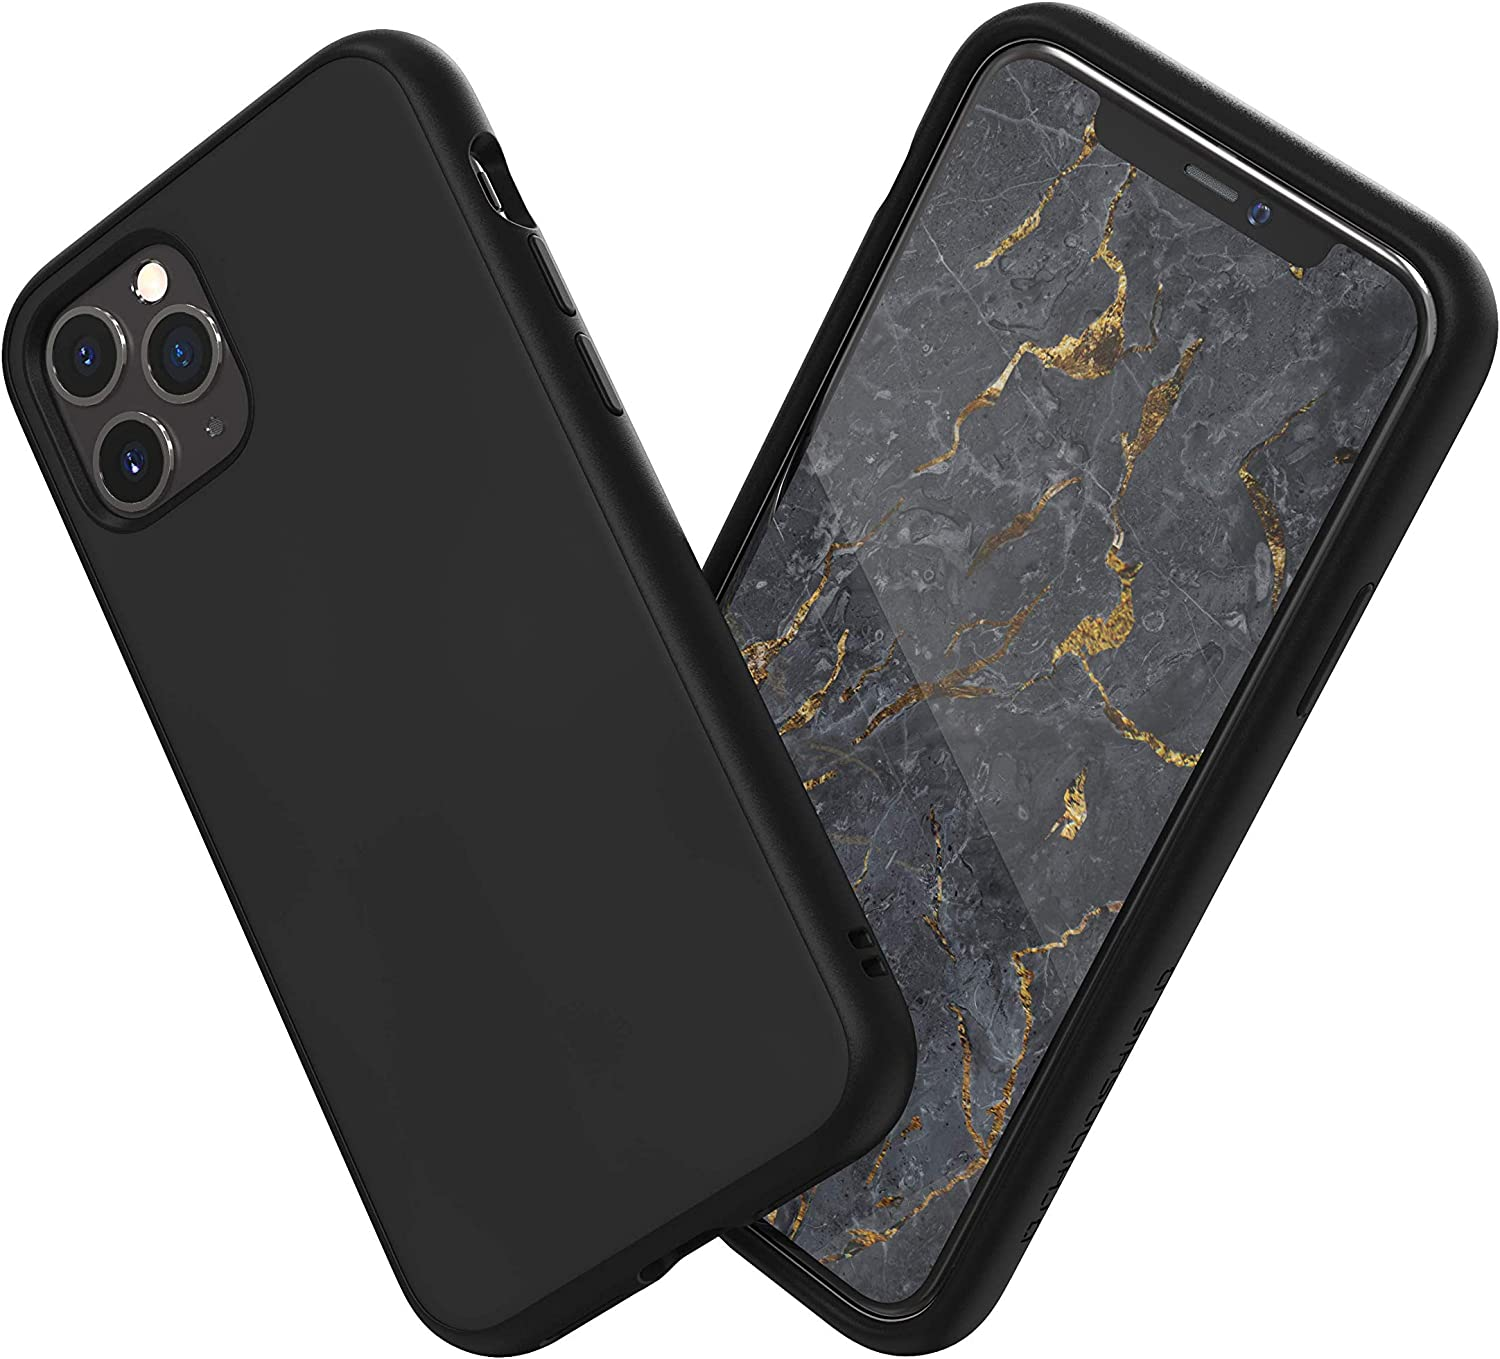 Amazon Com Rhinoshield Case Compatible With Iphone 11 Pro Max Solidsuit Shock Absorbent Slim Design Protective Cover With Premium Matte Finish 3 5m 11ft Drop Protection Classic Black